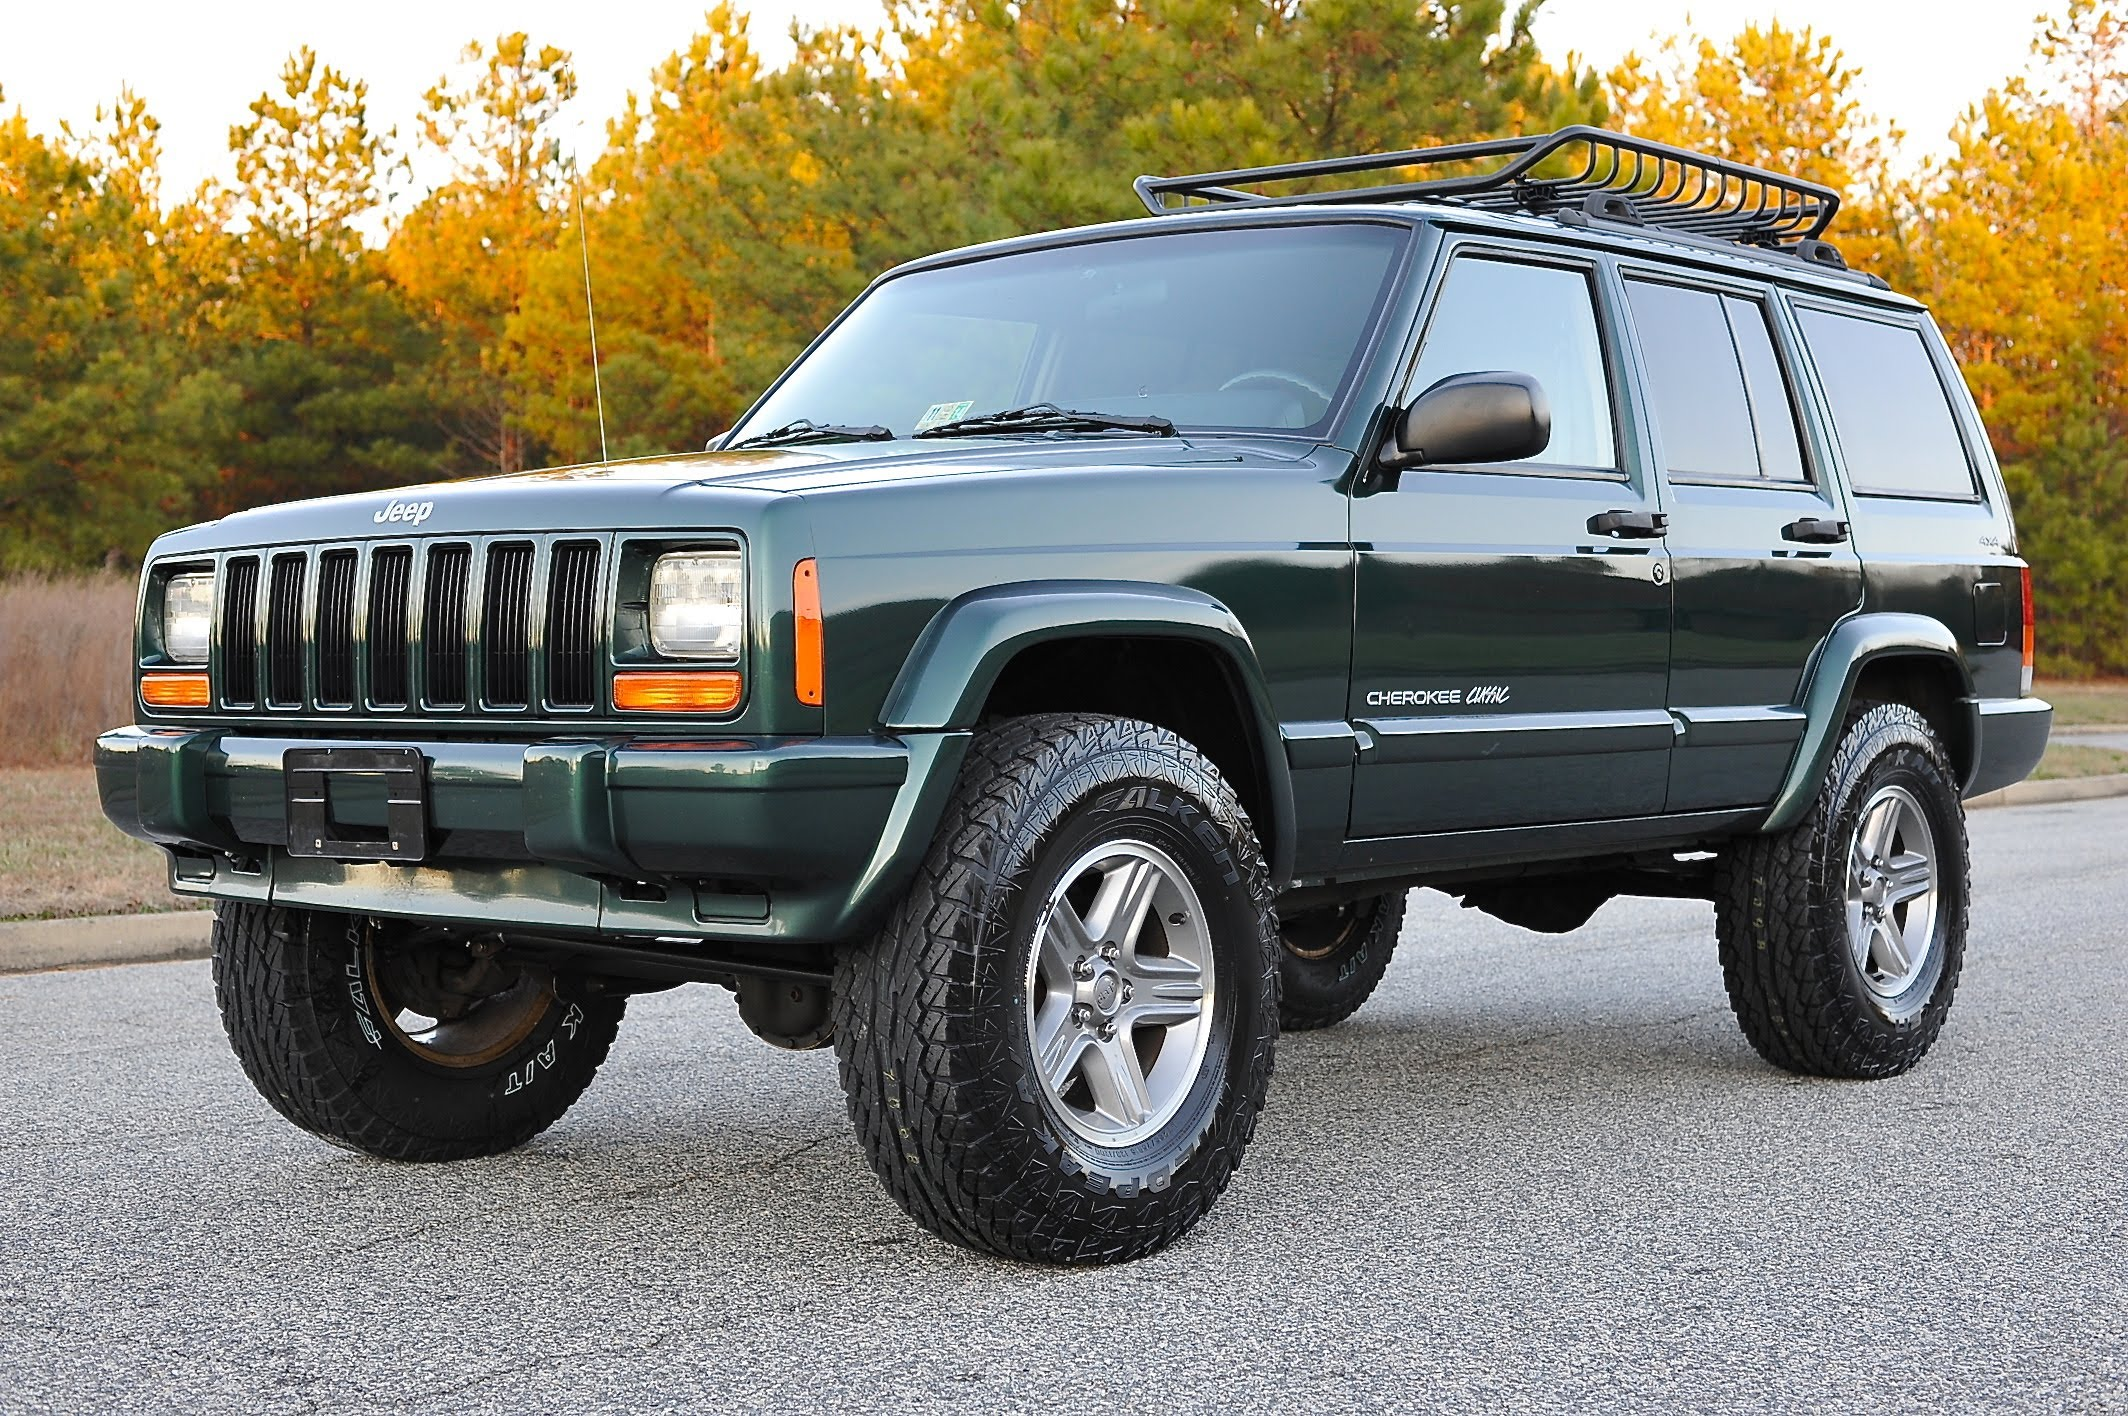 Badass Trucks & Cool SUVs - cherokee